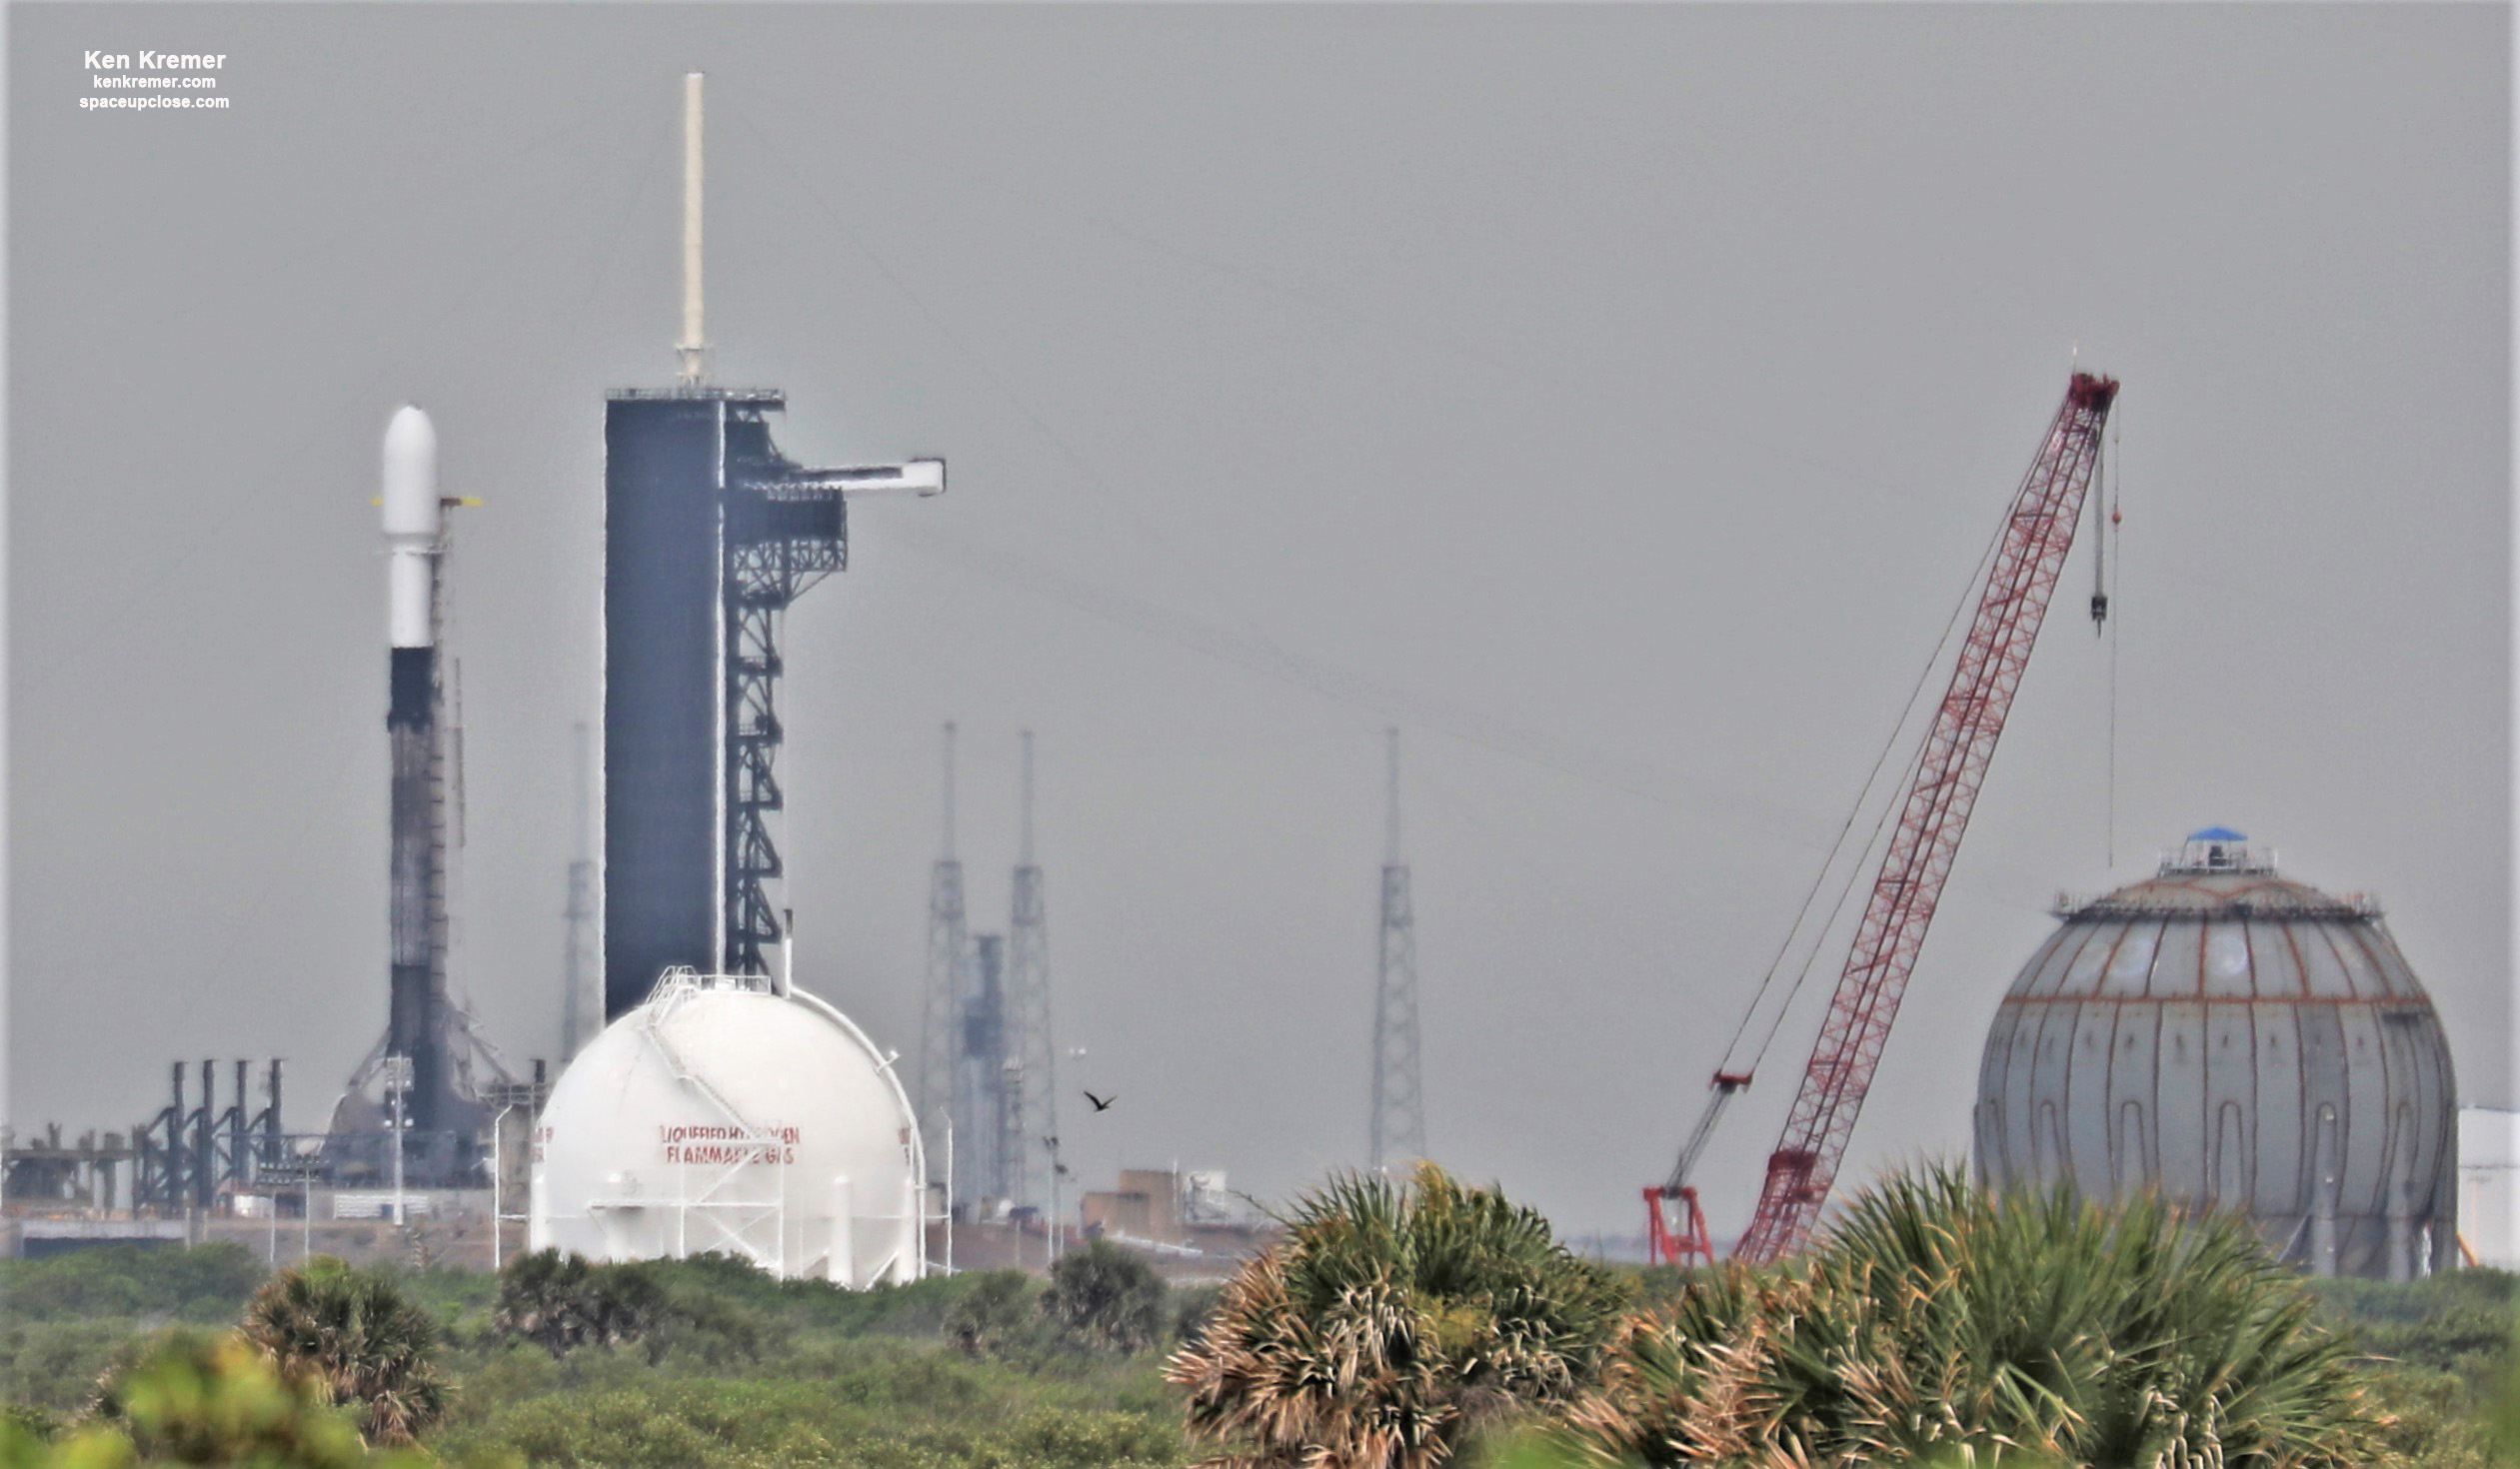 SpaceX Scrubs Next Starlink Falcon 9 Launch 3 Hours Before Liftoff, New Date TBD